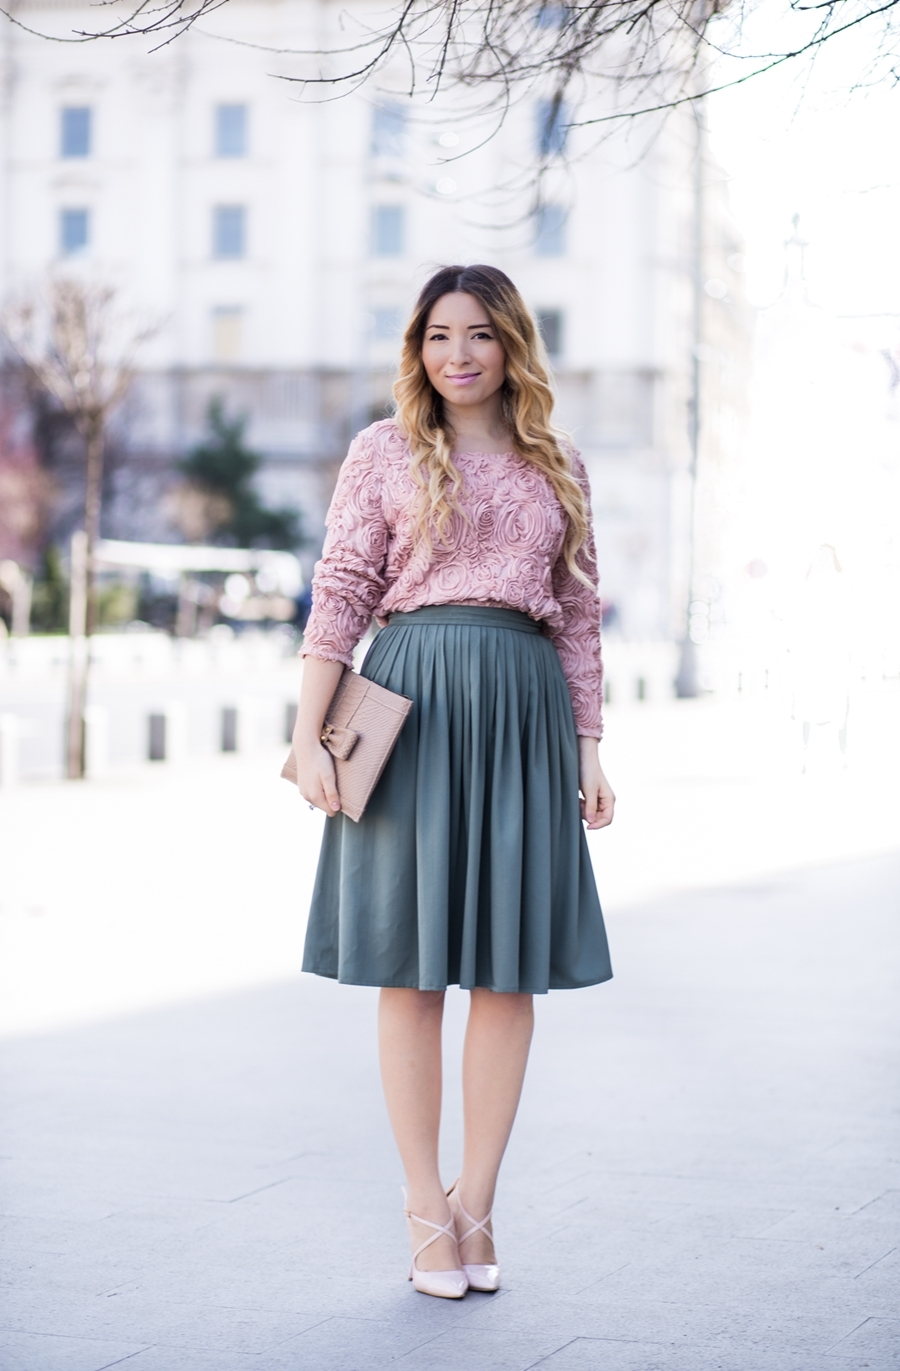 Street style - spring look, nude powdery pink roses blouse, military green vintage midi skirt, pleated skirt, nude shoes, nude clutch, feminine look - andreea ristea